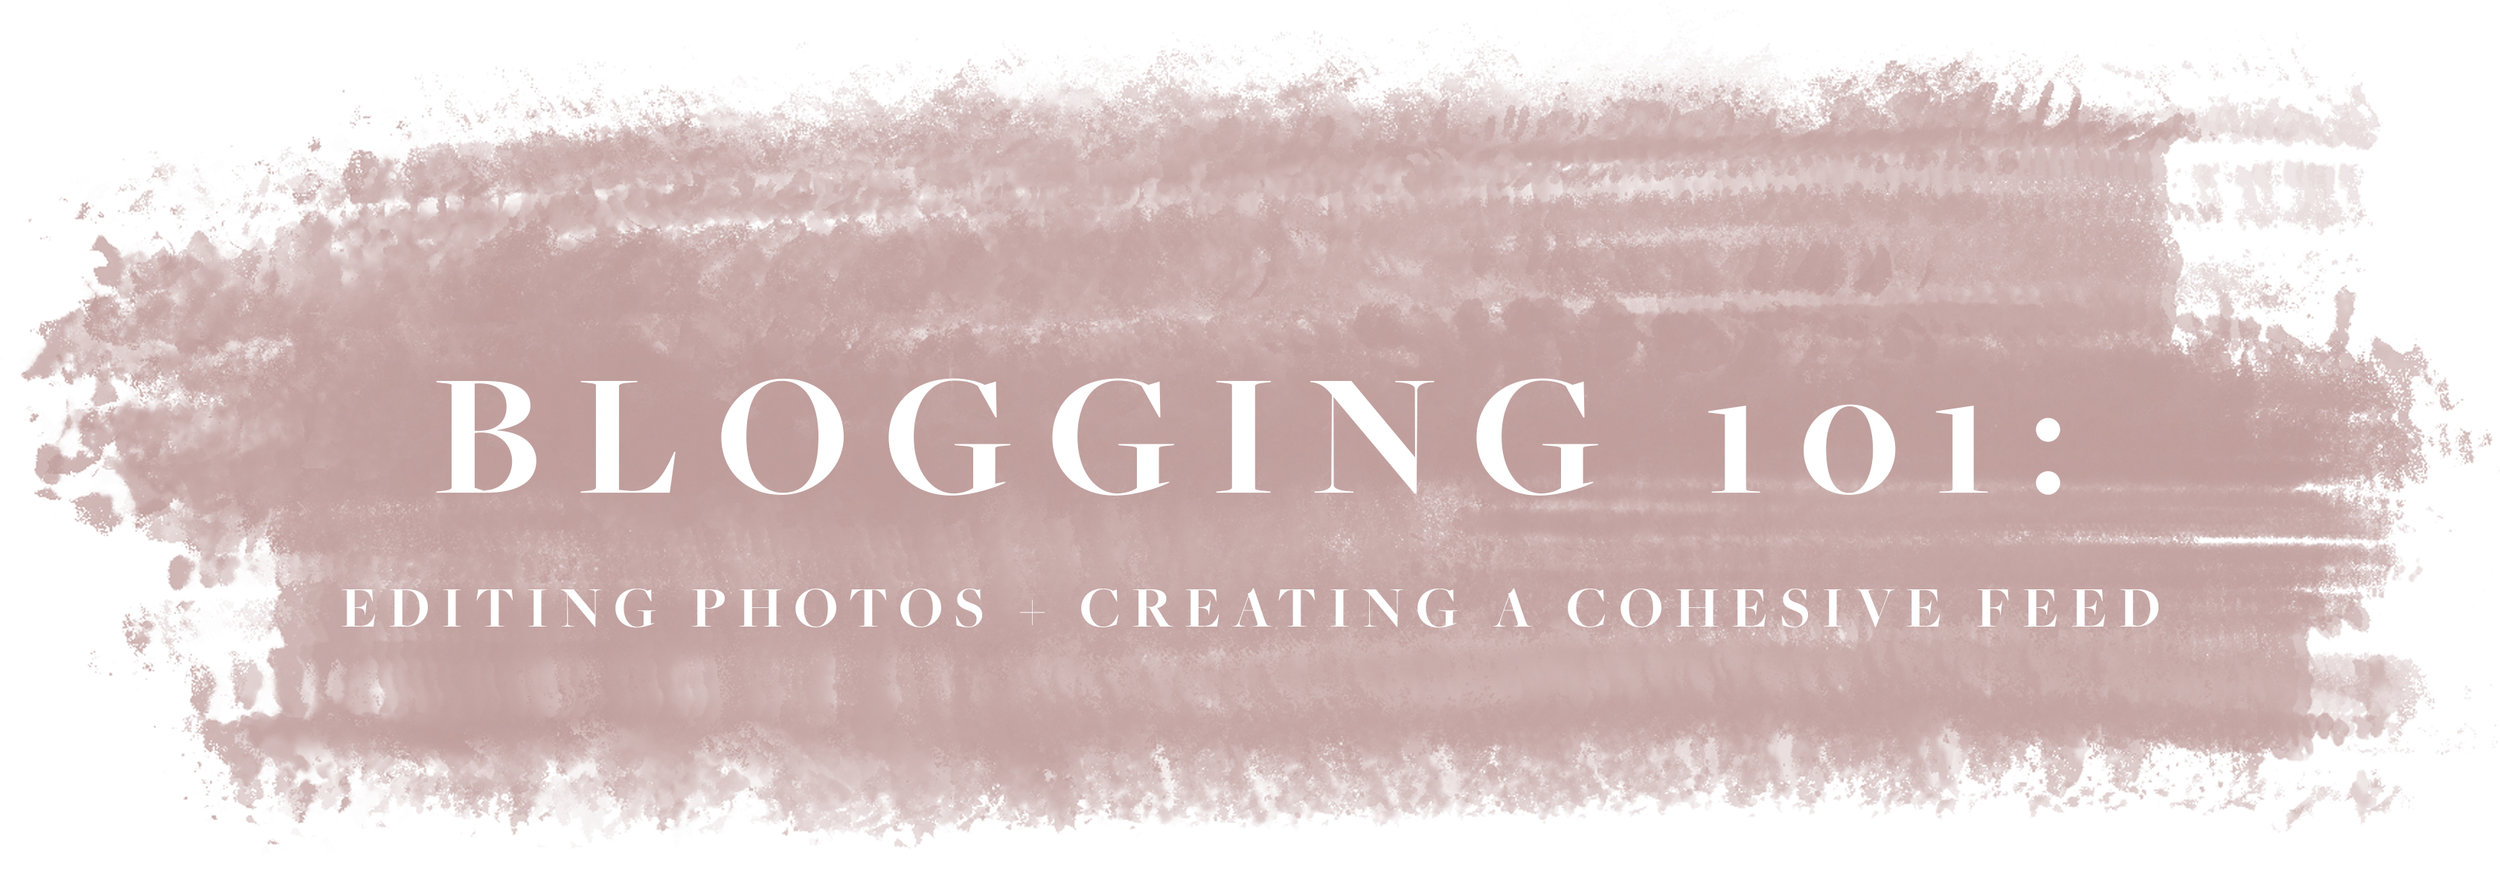 blogging101header.jpg